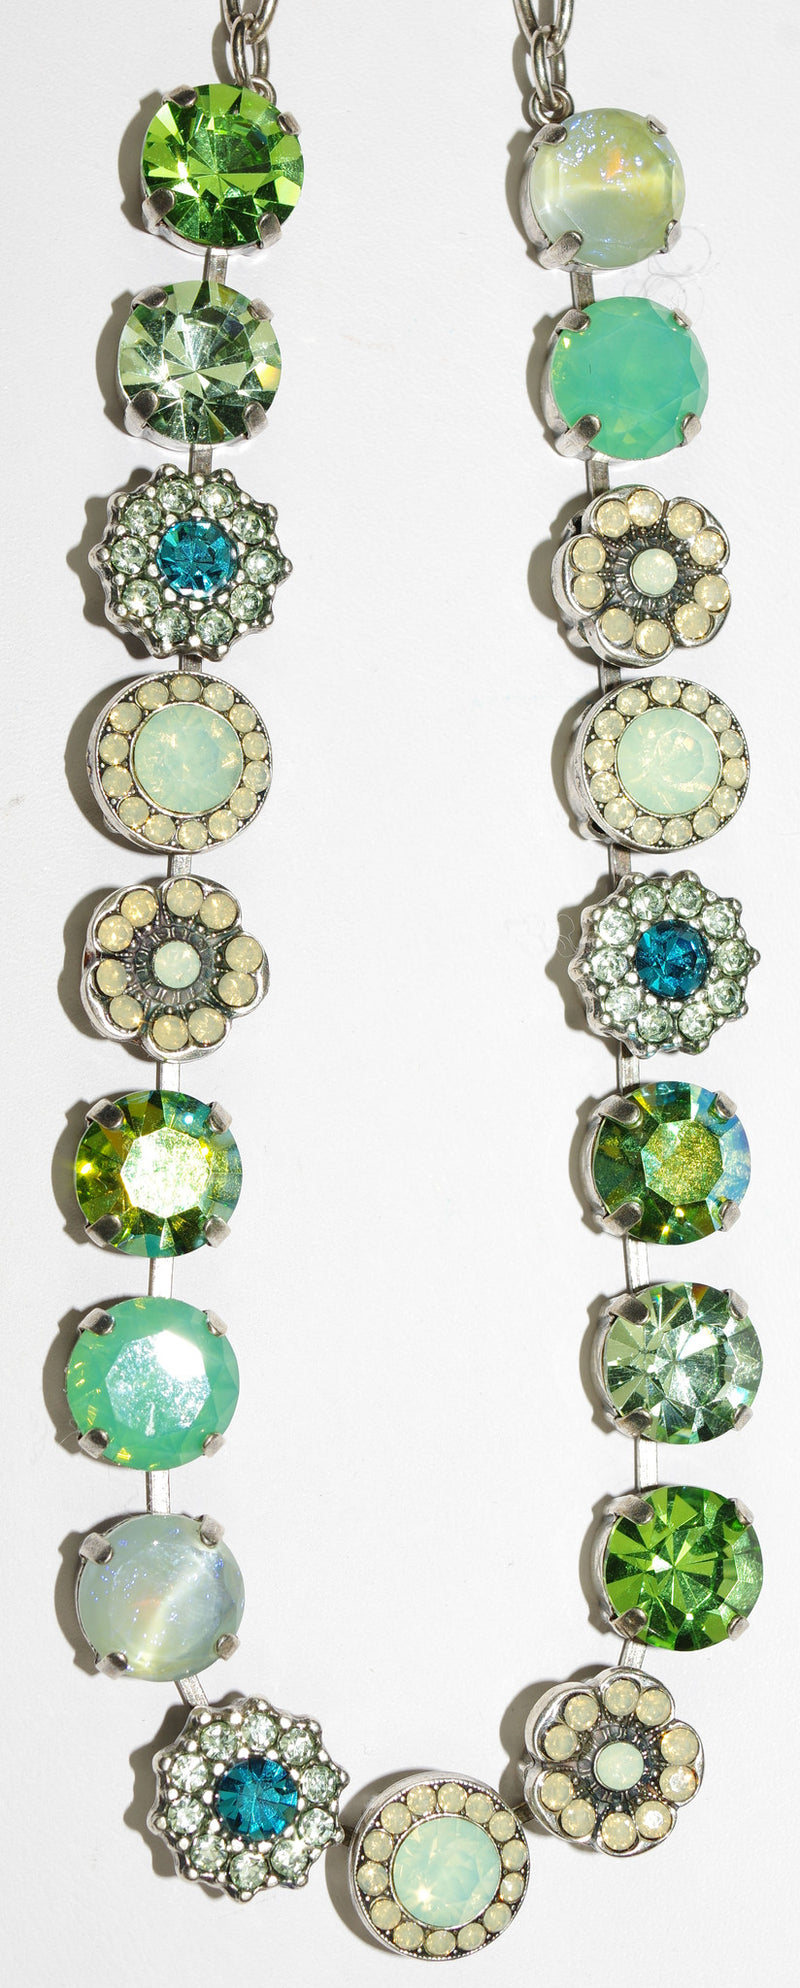 "MARIANA NECKLACE GRACE SOPHIA: green, white, pacific opal stones in silver setting, 18"" adjustable chain"